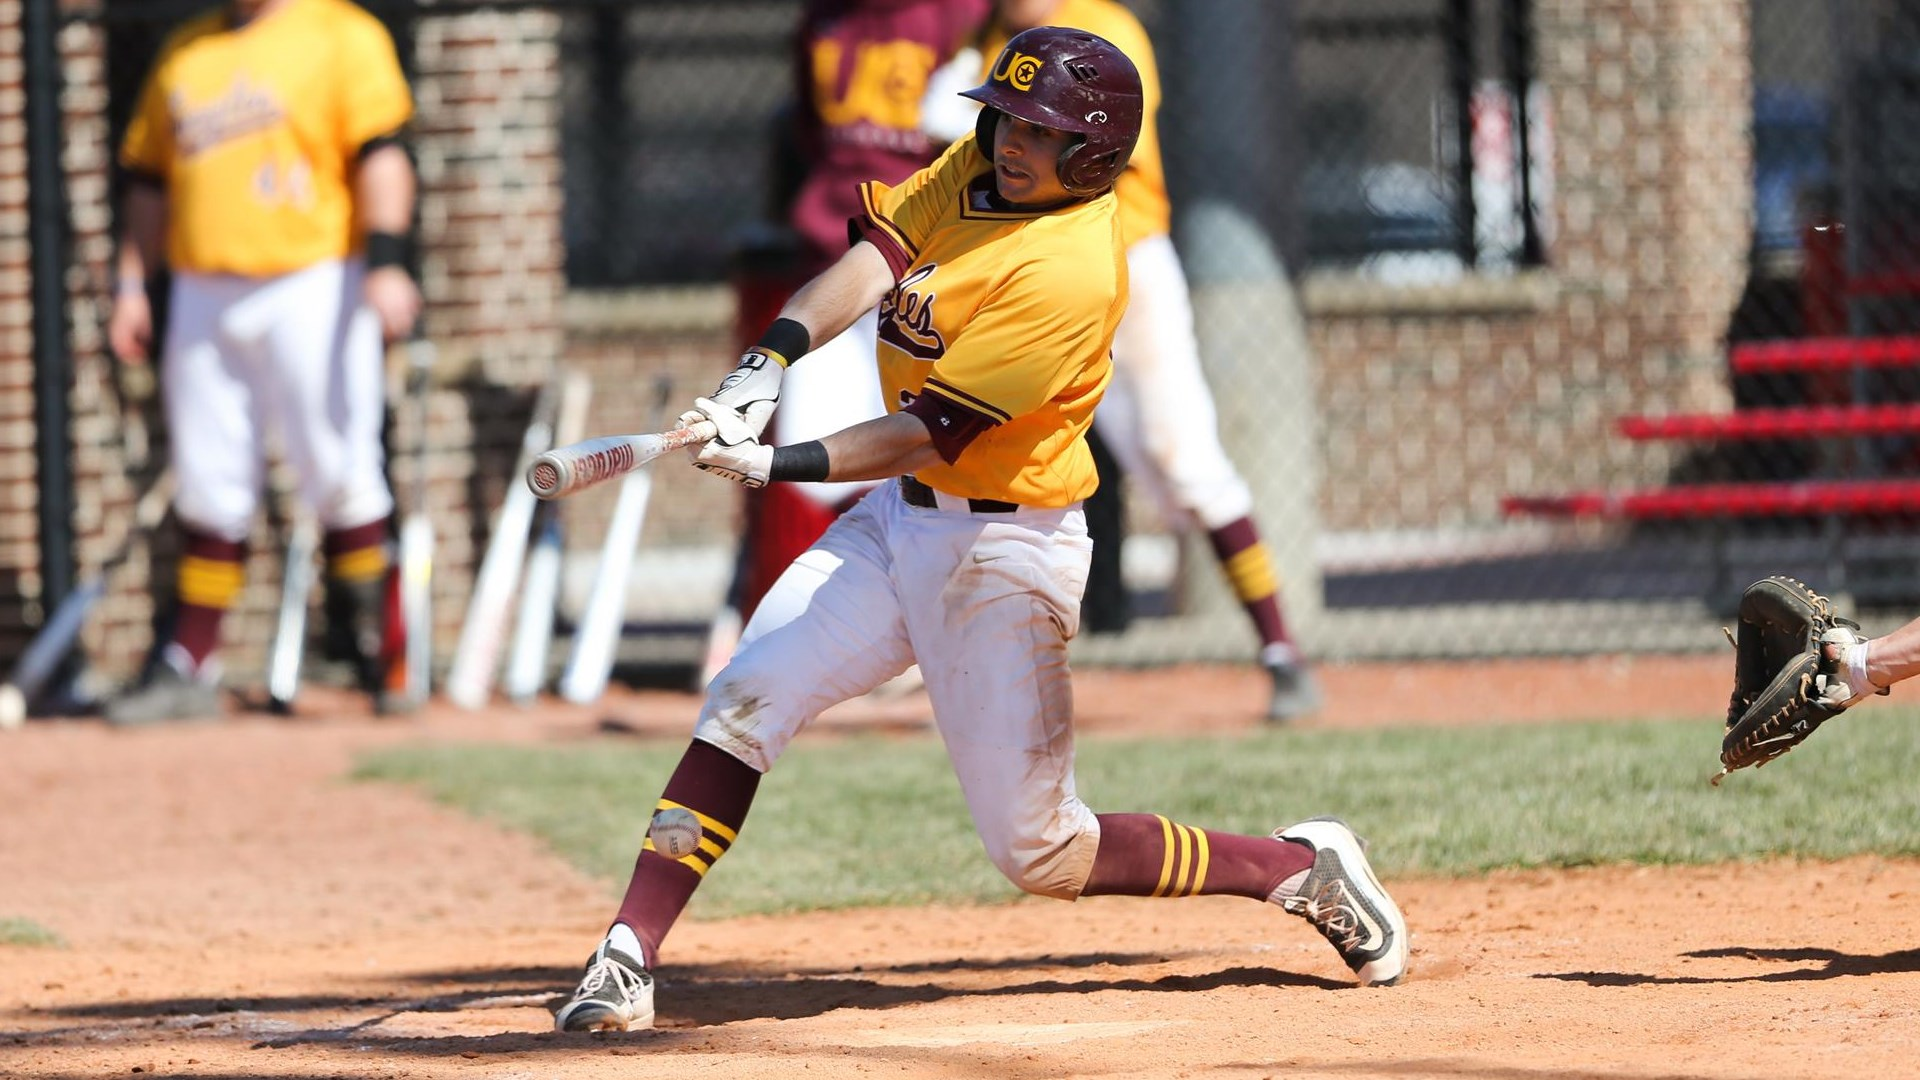 Toronto Mets alum Gianfranco Morello (Toronto, Ont.) had eights, three runs and three RBIs and batted .727 in three games for Charleston. Photo: Charleston Athletics